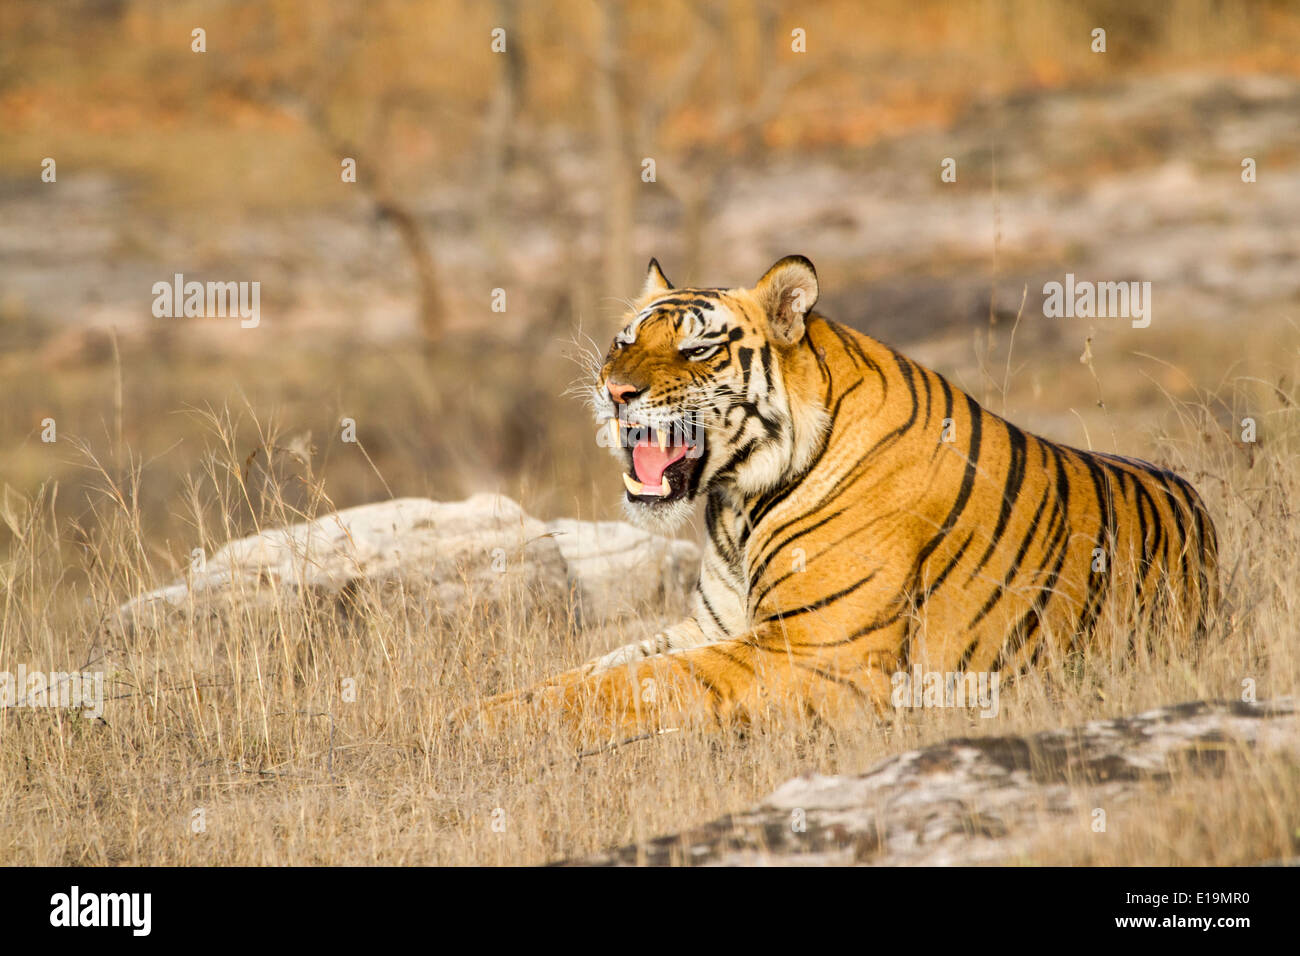 male tiger laying down and looking into the distance, snarling, Bandhavgarh National Park, Madhya Pradesh, India, Asia - Stock Image